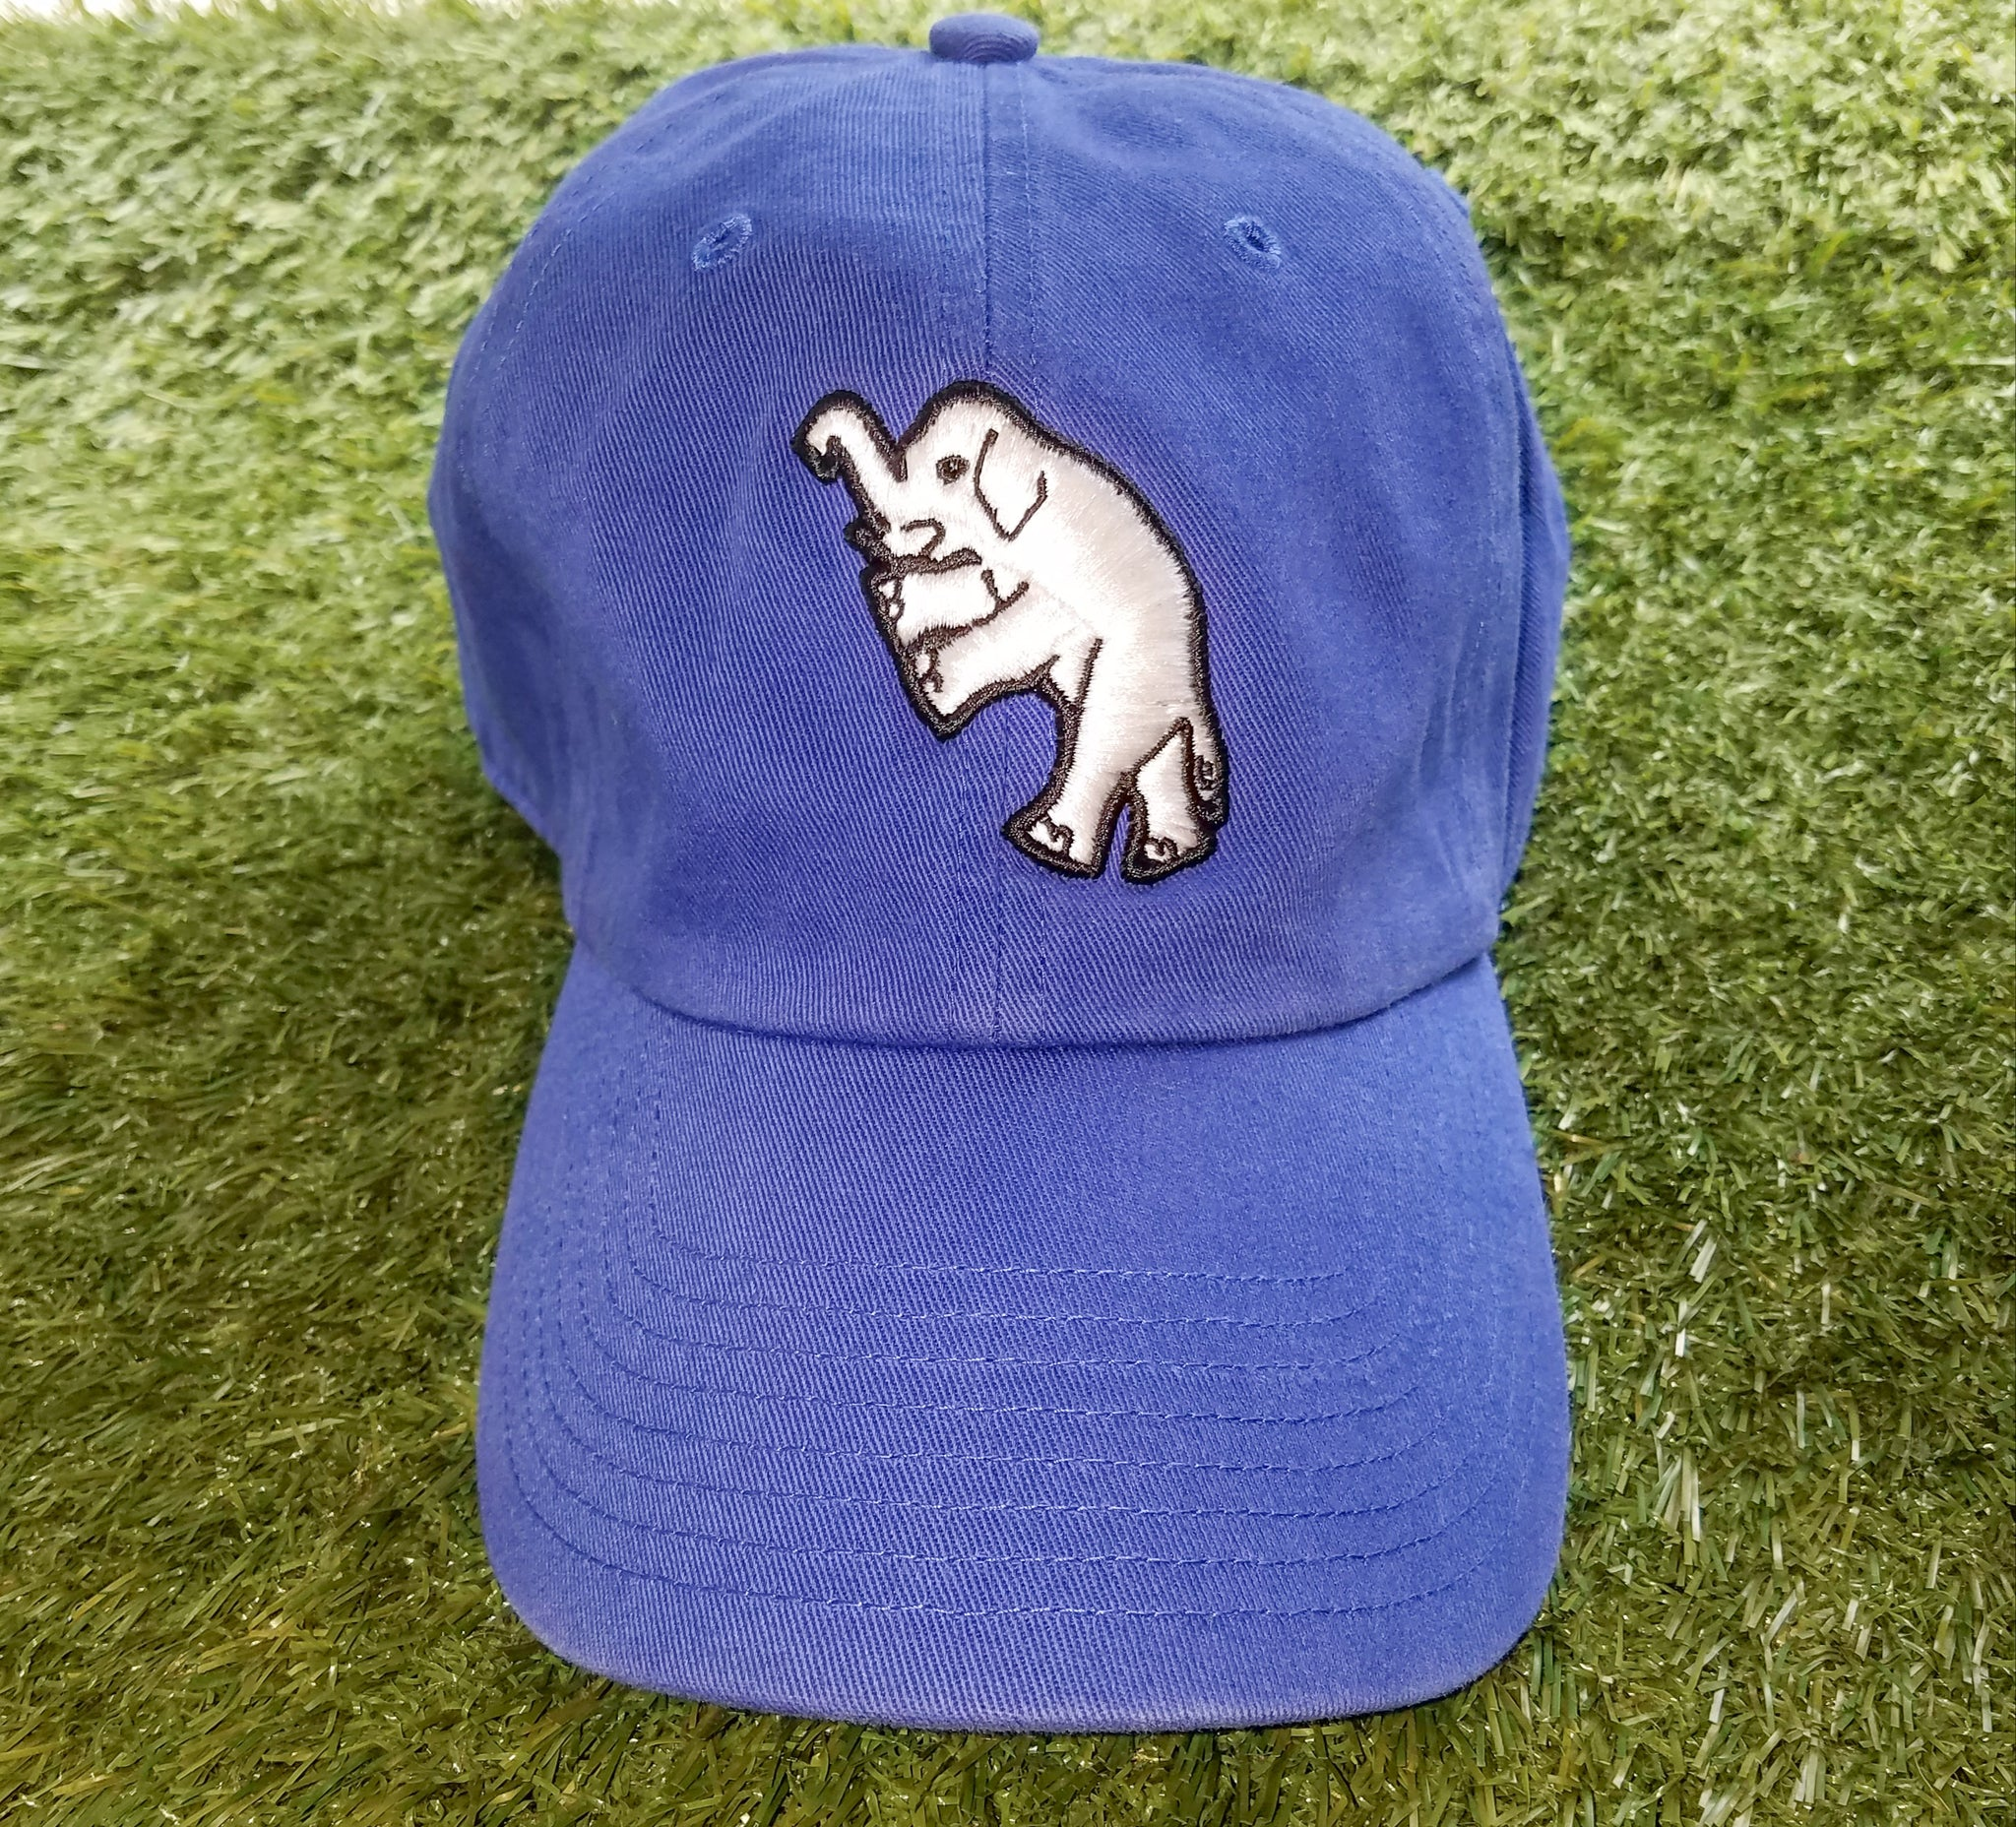 new product d56c3 a61cd Philadelphia Athletics Elephant Adjustable Royal Blue Cap